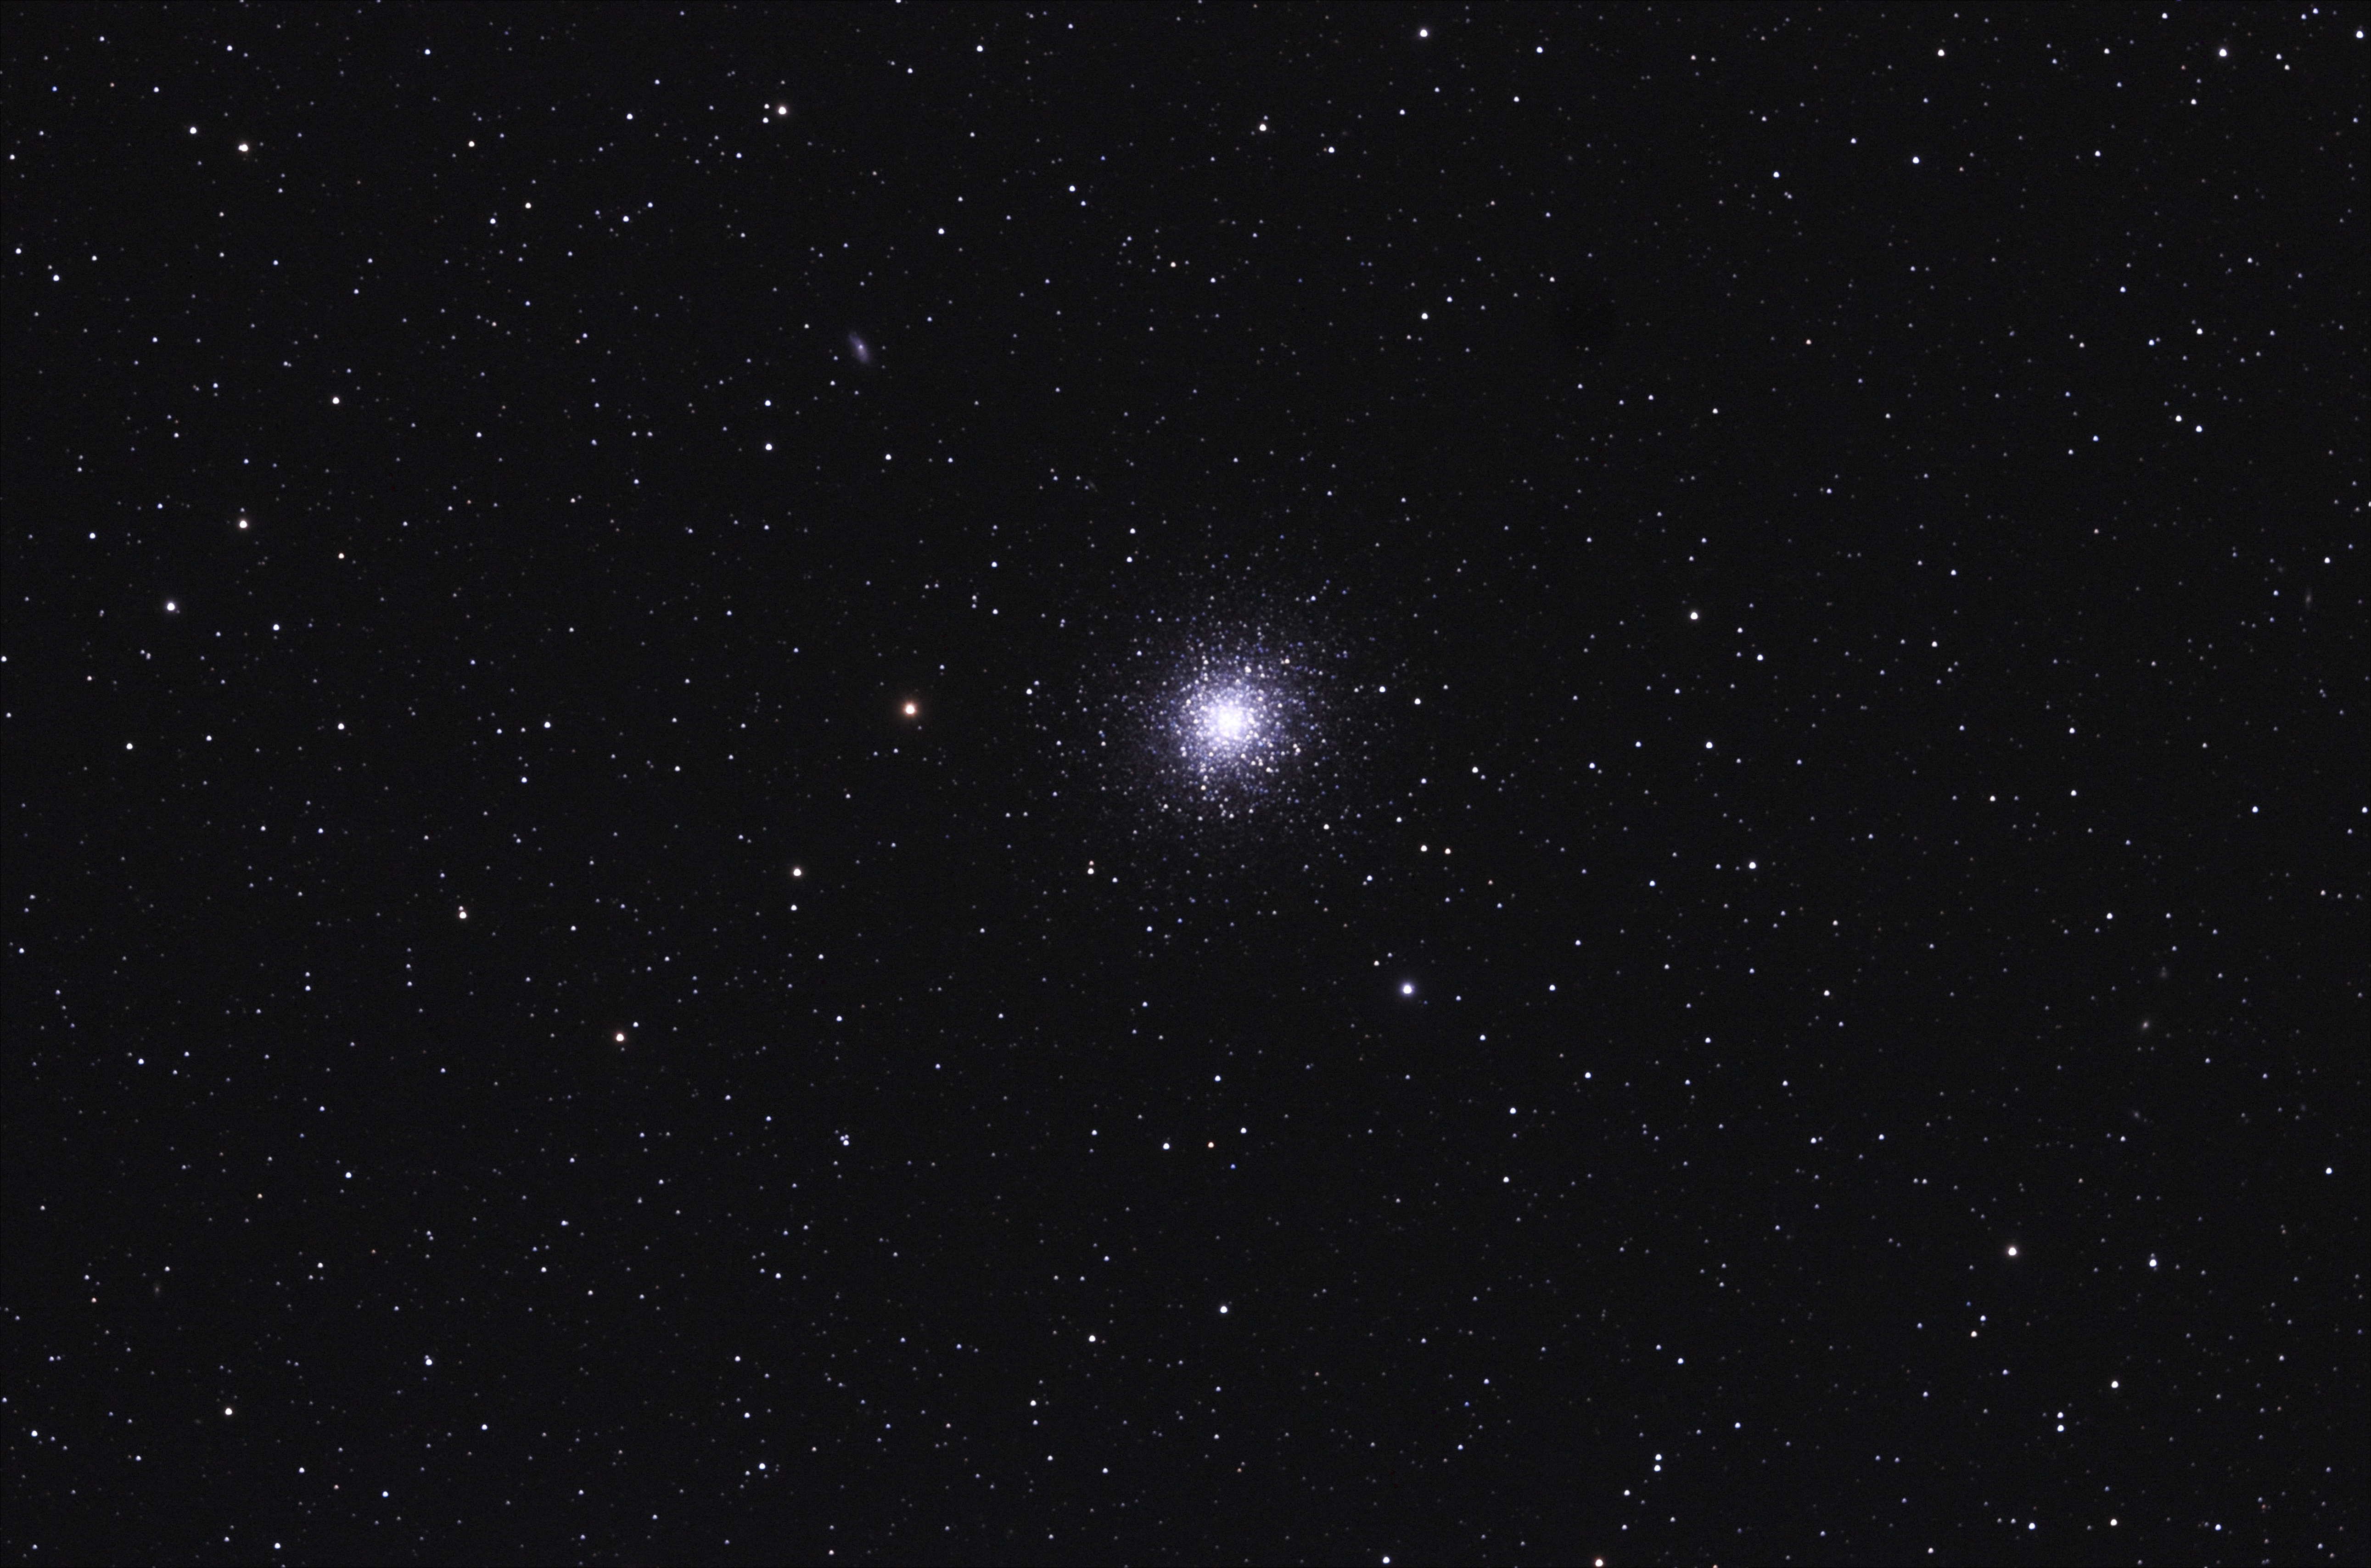 starcluster m13 - photo #38